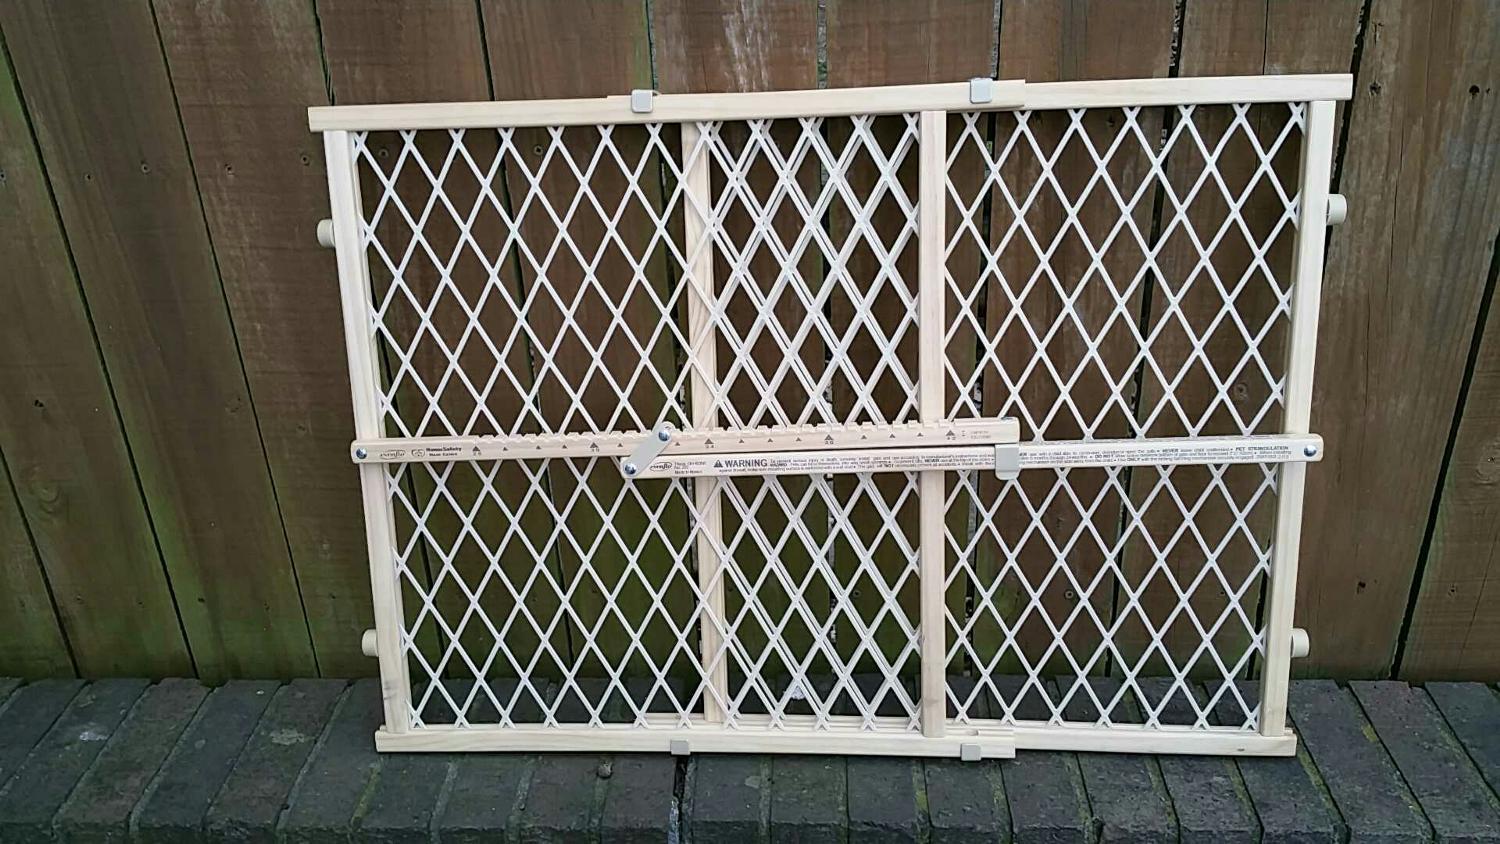 Best Evenflo Wooden Baby/pet Gate 23x42 Euc For Sale In